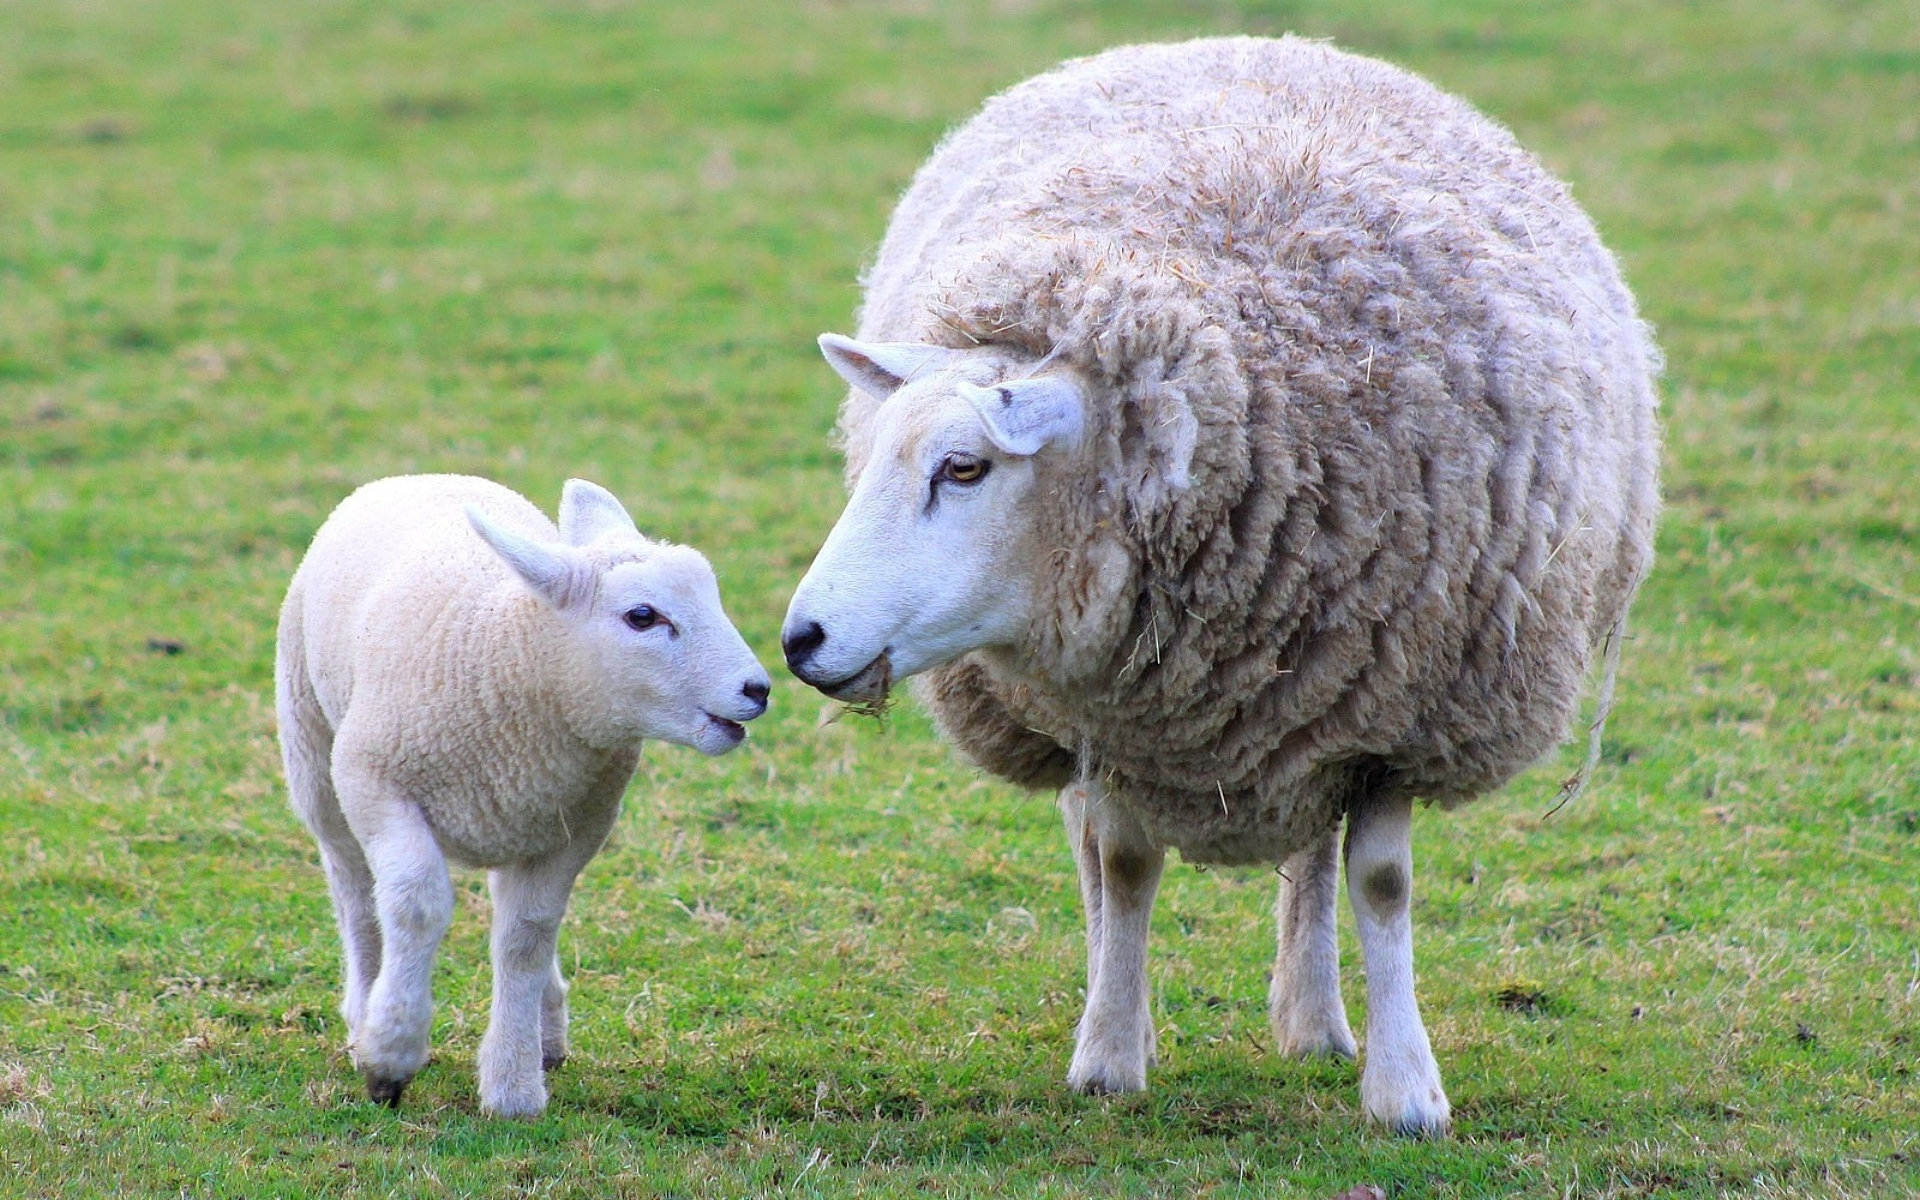 Sheep with a Baby Cub